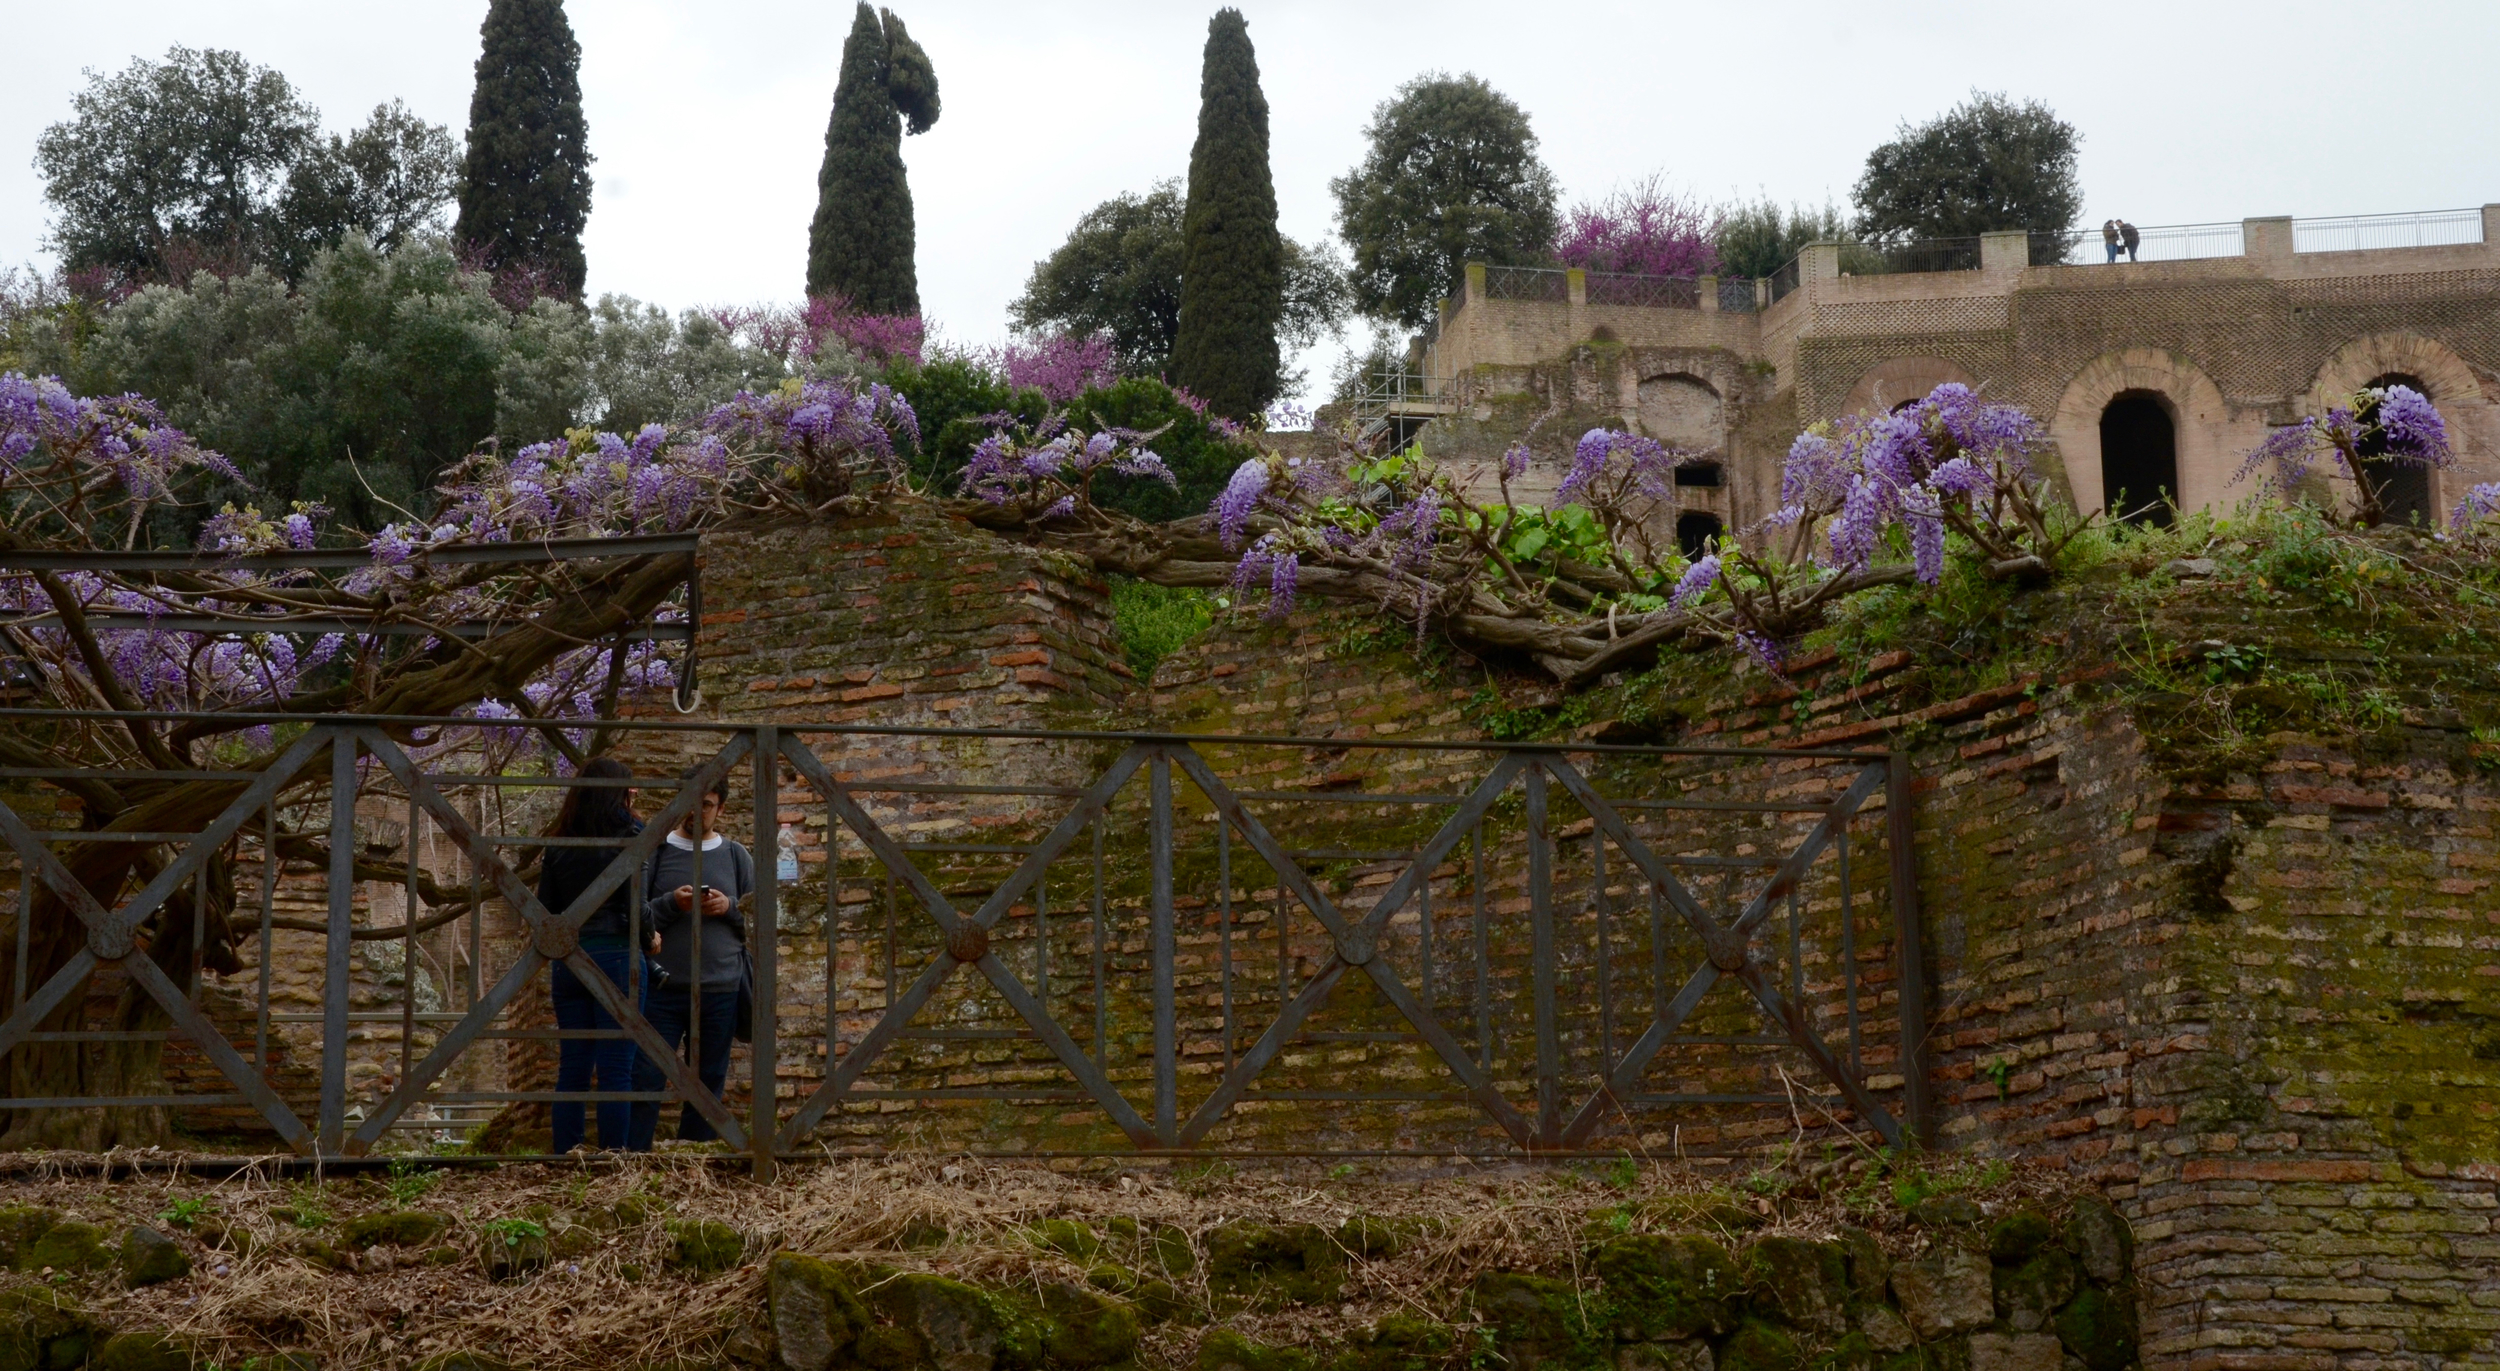 Wisteria vines along the Roman Forum remains